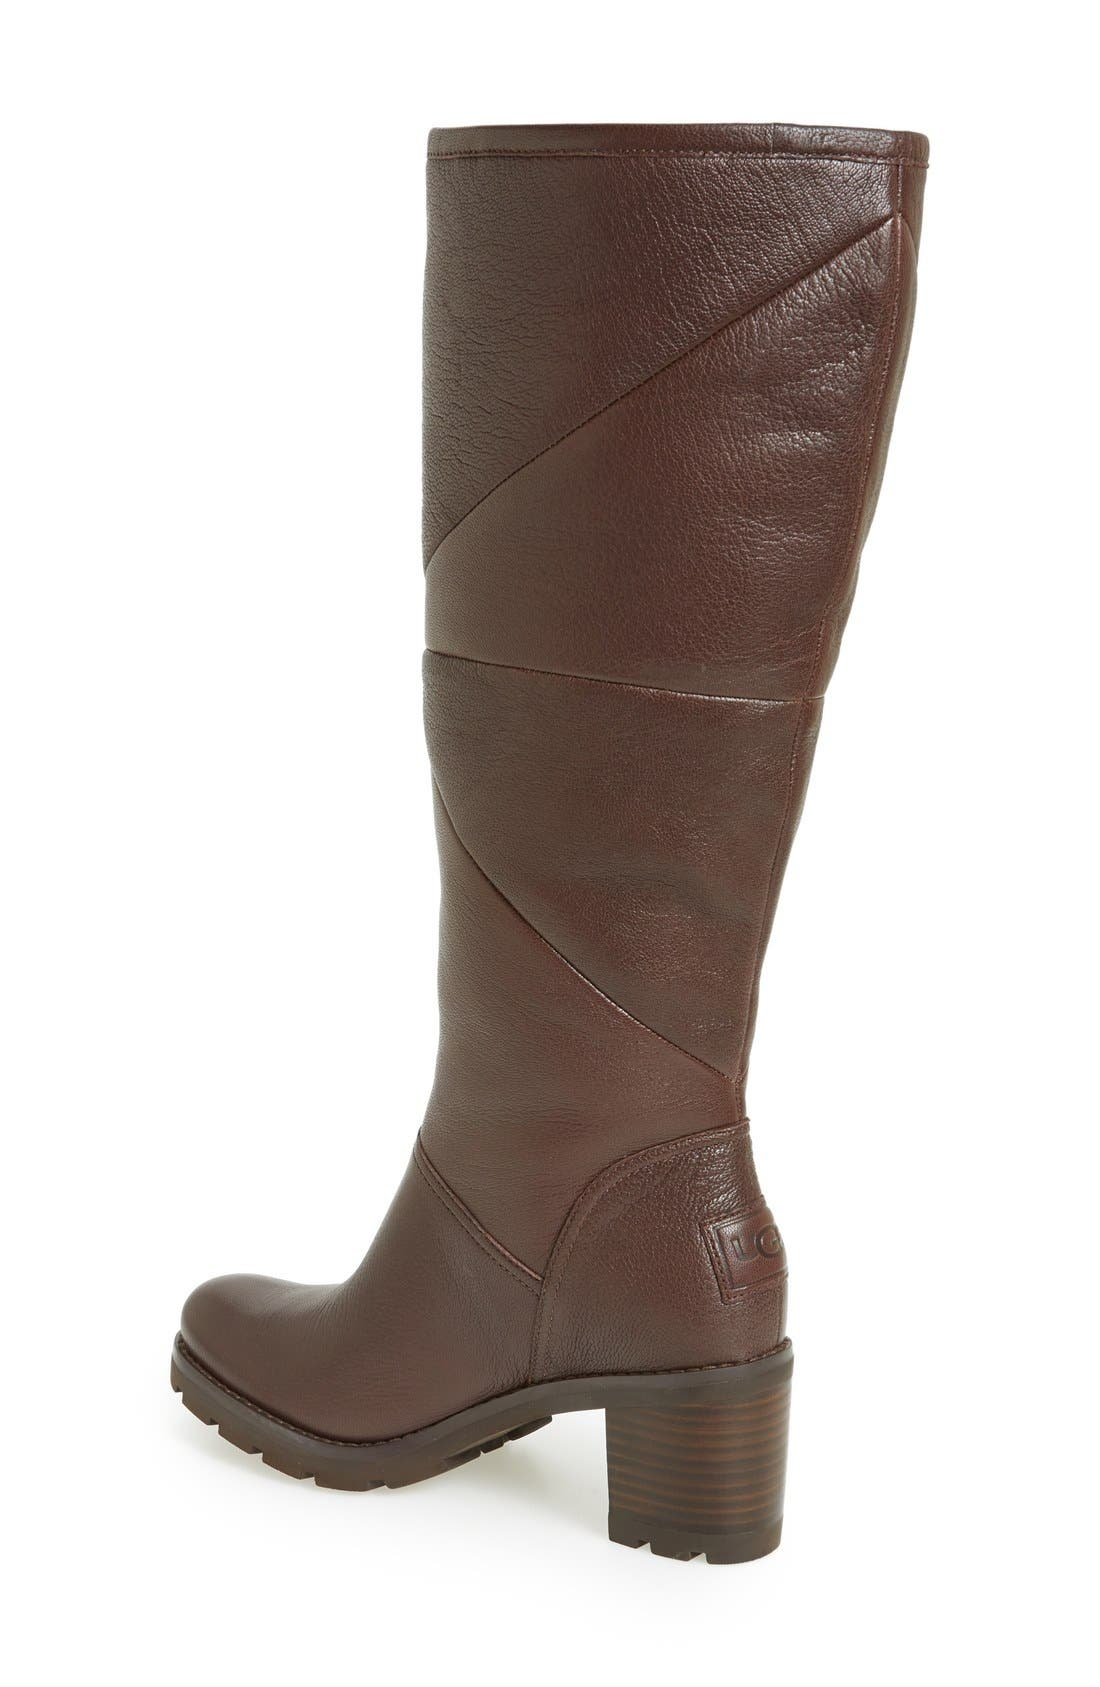 Alternate Image 2  - UGG® 'Avery' Water Resistant Genuine Shearling Lined Leather Boot (Women)